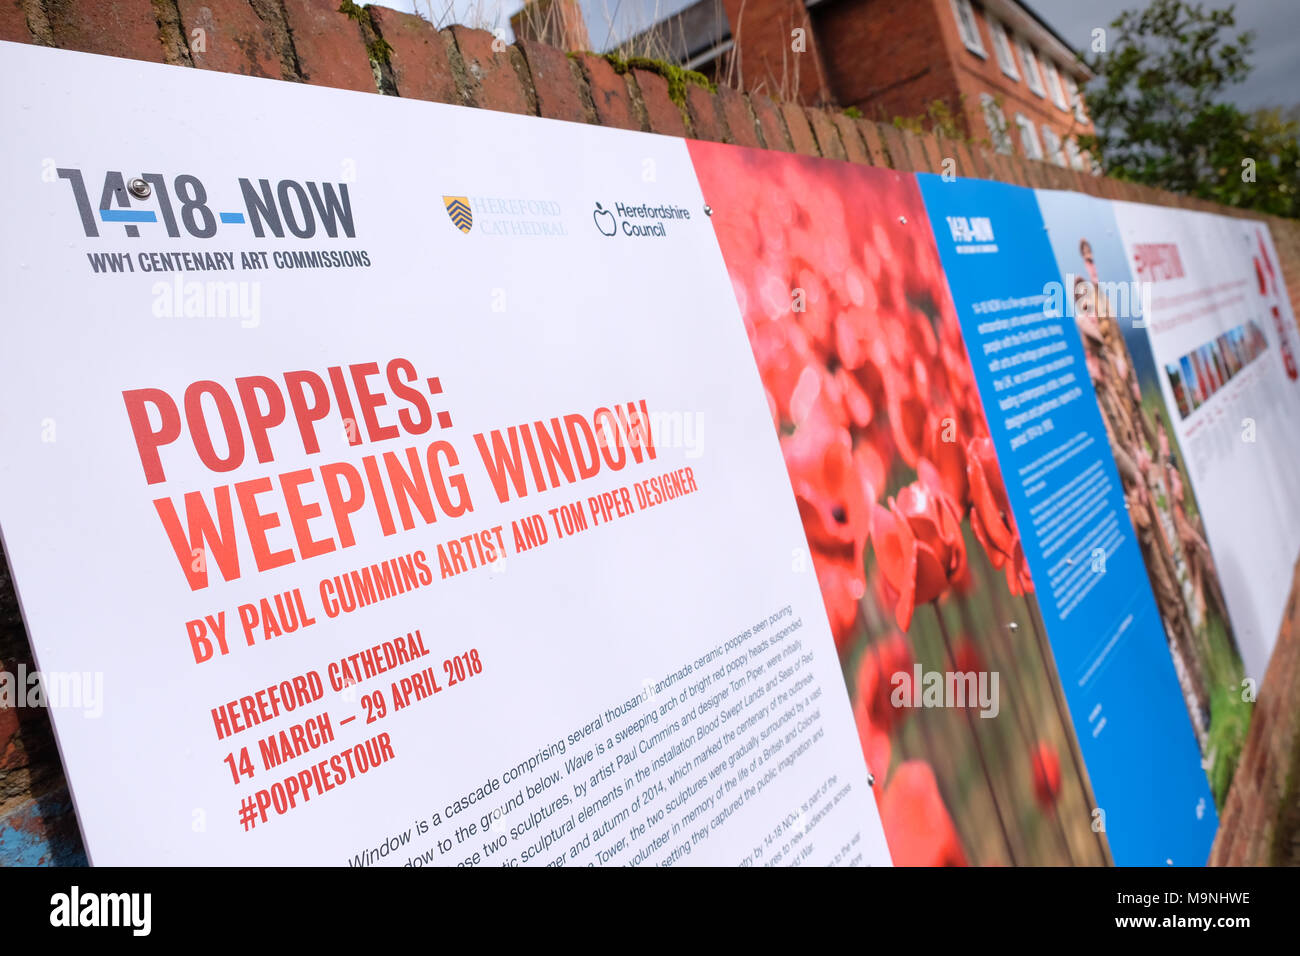 Hereford UK information boards about the Weeping Window ceramic poppies art installation 14-18 NOW - Stock Image